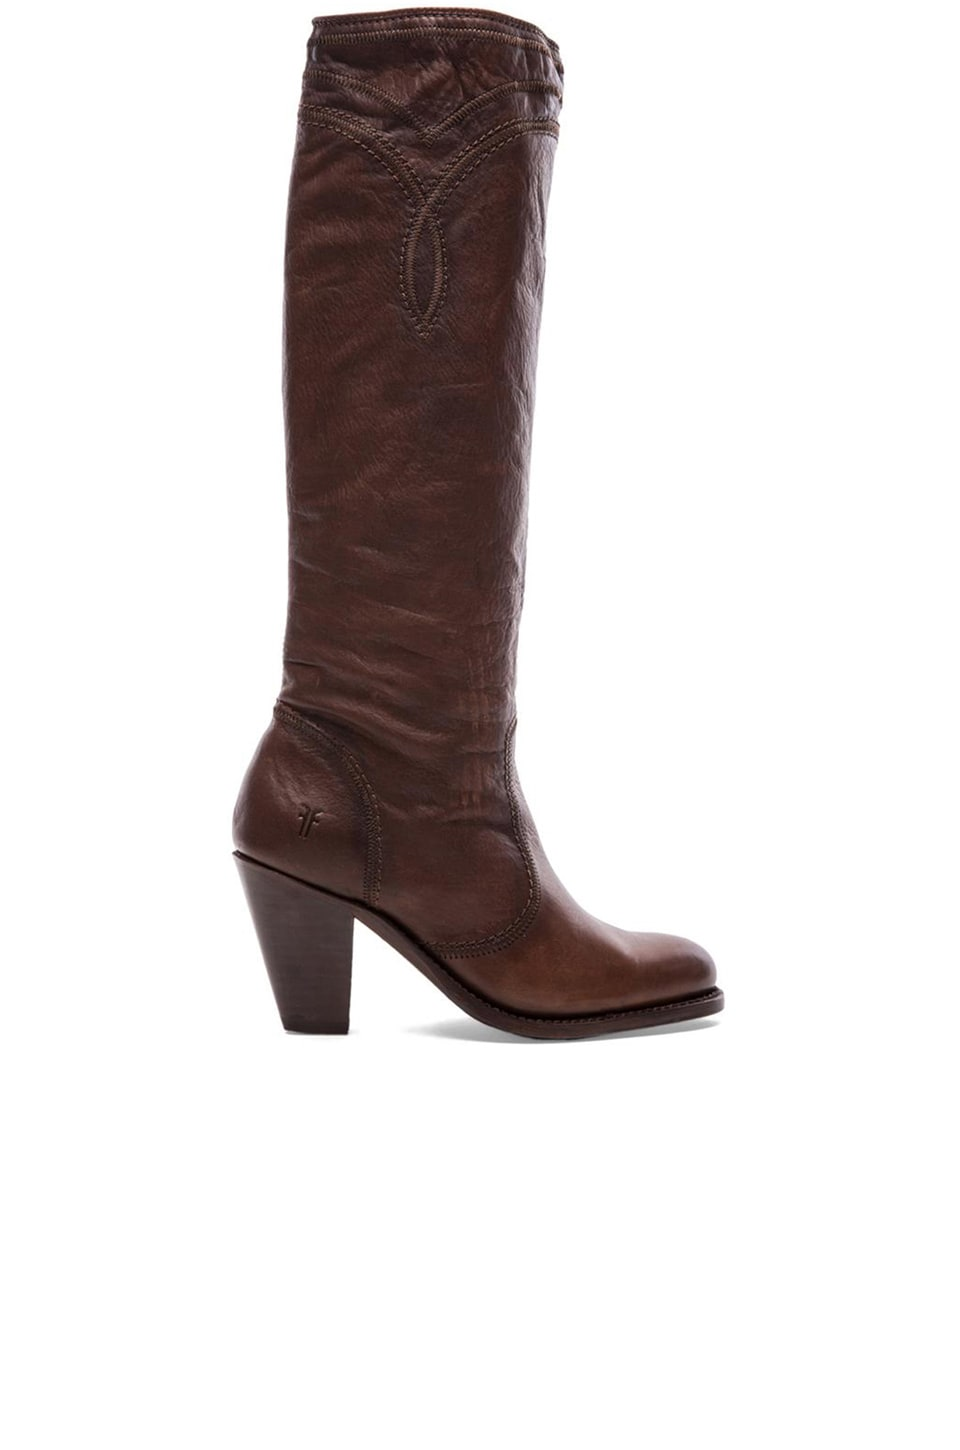 Frye Mustang Stitch Tall Boot in Cognac